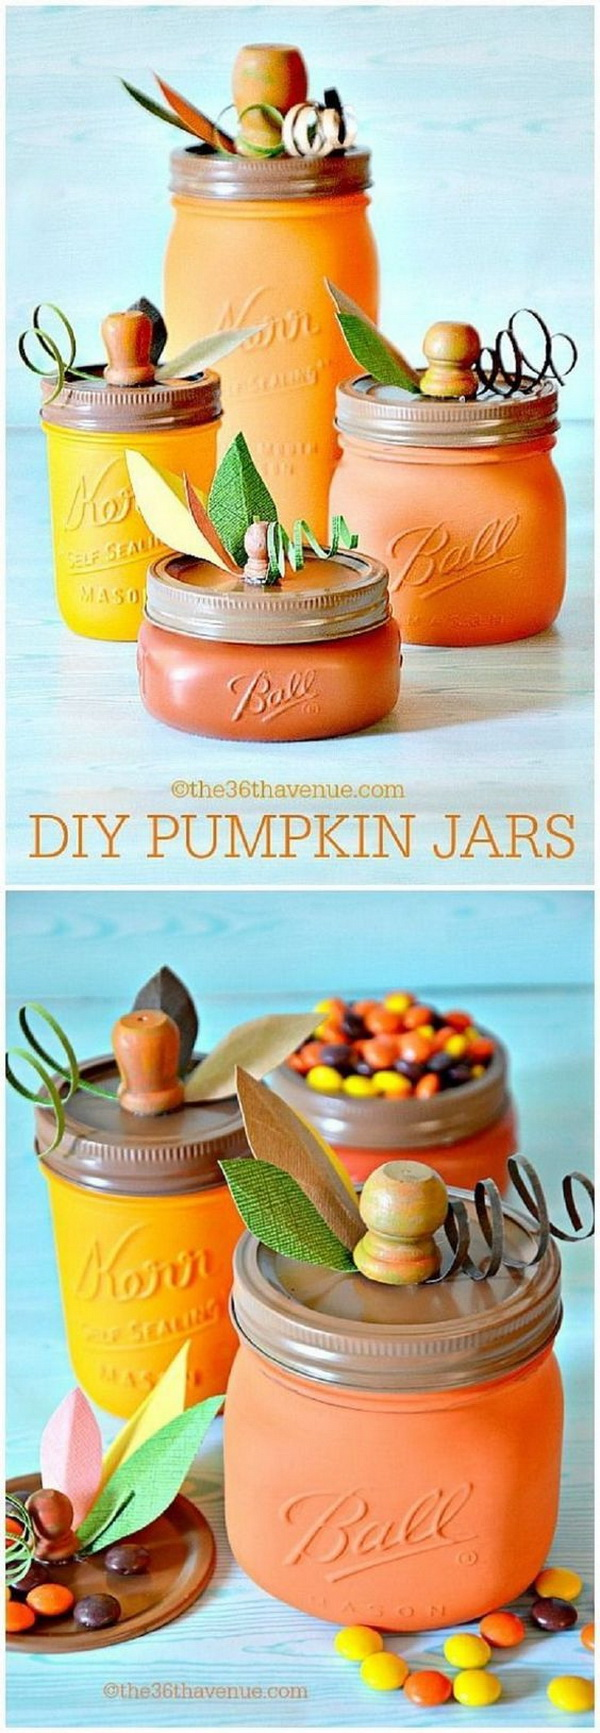 DIY Pumpkin Mason Jar. Using leftover glass jars to create these customized pumpkin mason jars. They are both thrifty and fun to do and make great fall decoration or used as gifts.